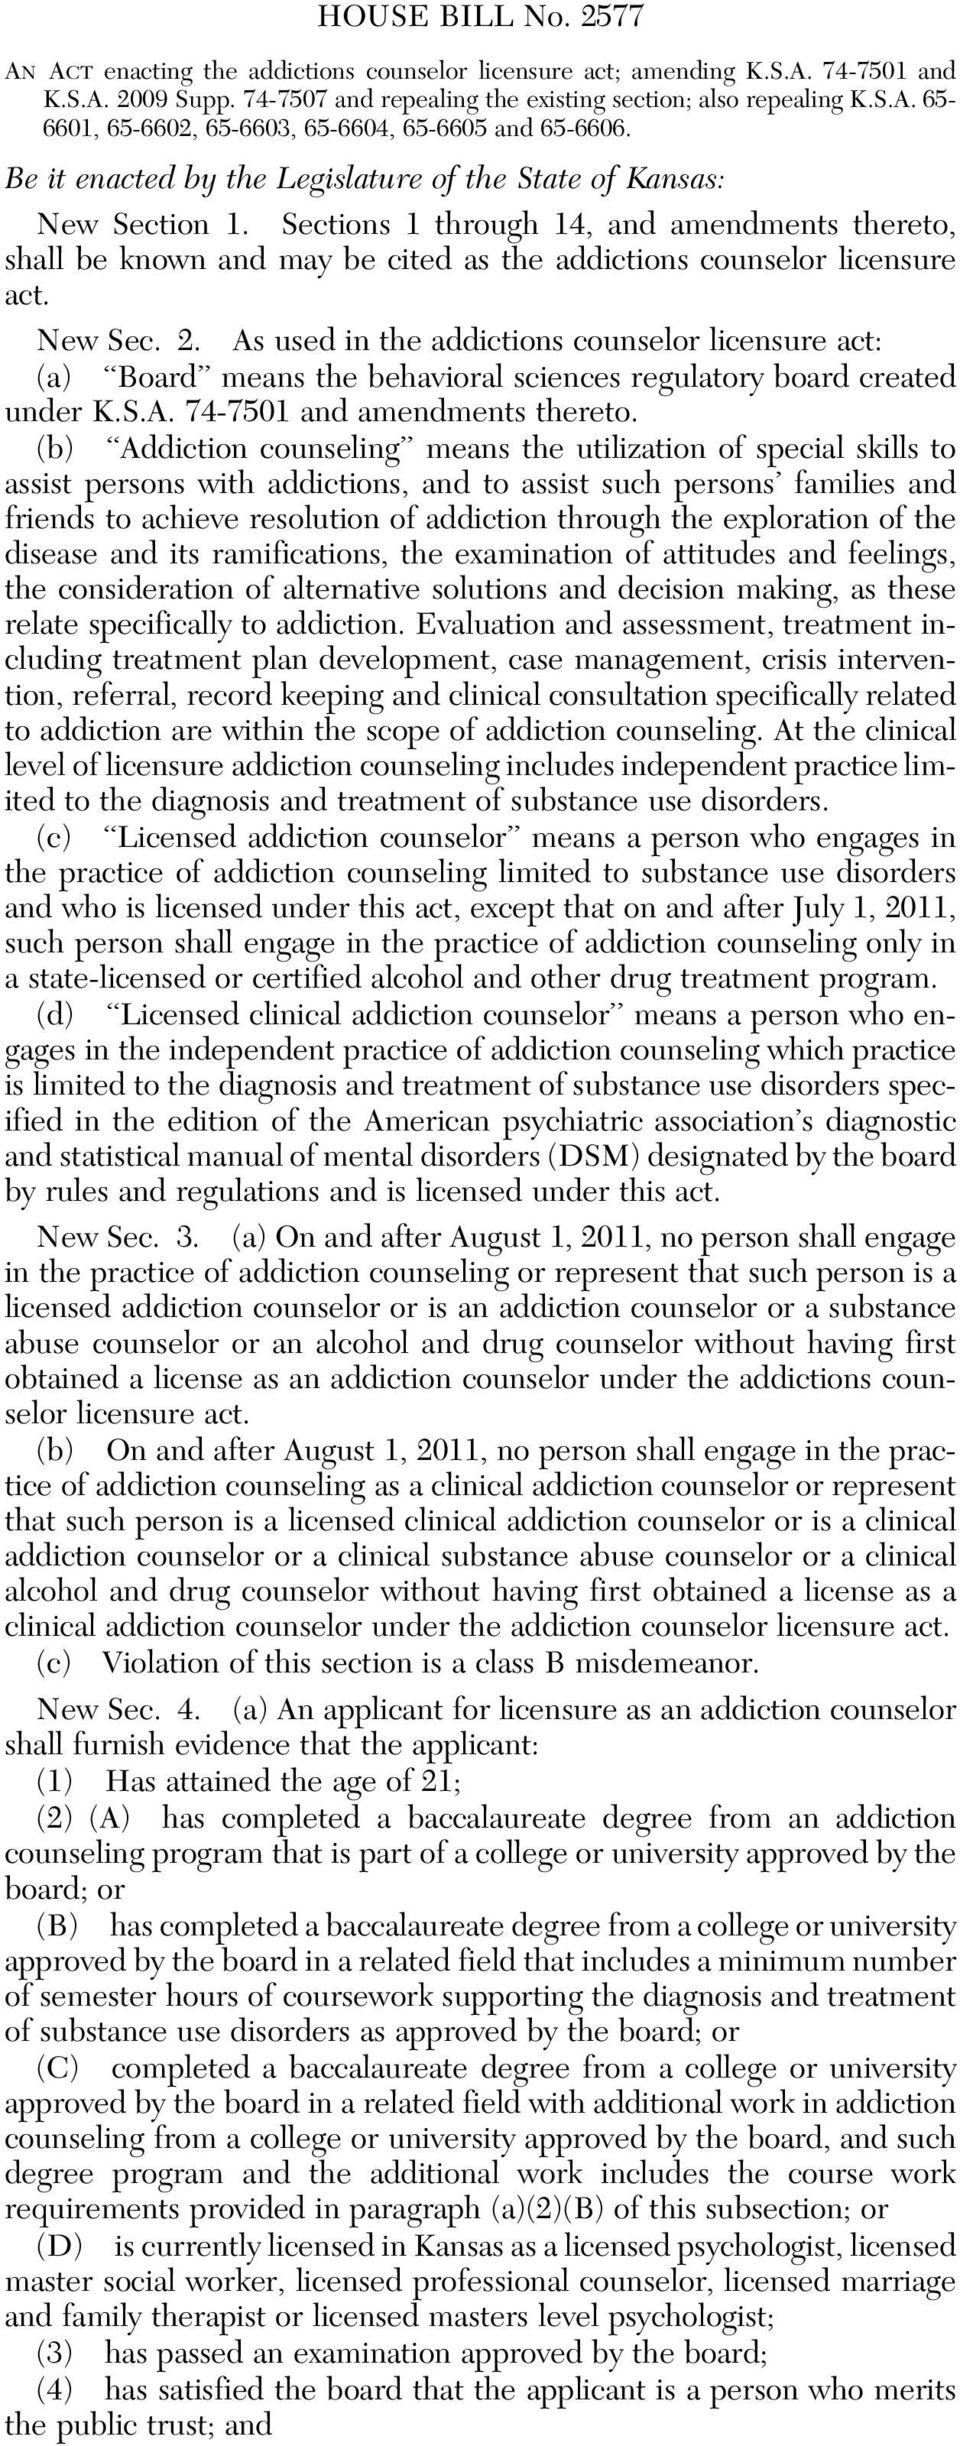 New Sec. 2. As used in the addictions counselor licensure act: (a) Board means the behavioral sciences regulatory board created under K.S.A. 74-7501 and amendments thereto.